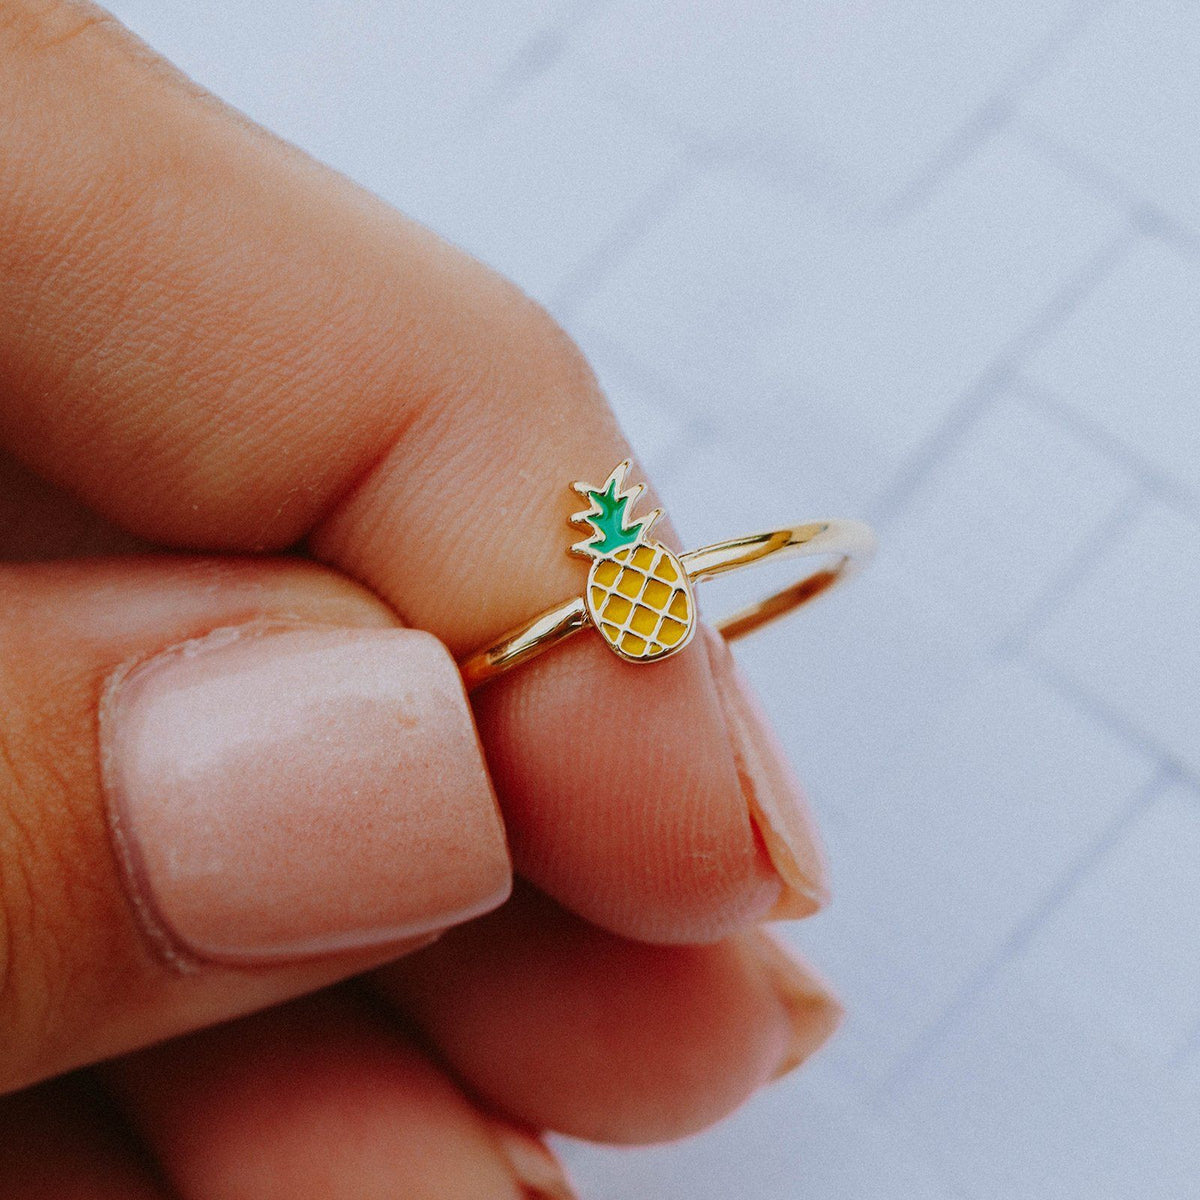 Enamel Pineapple Ring 6